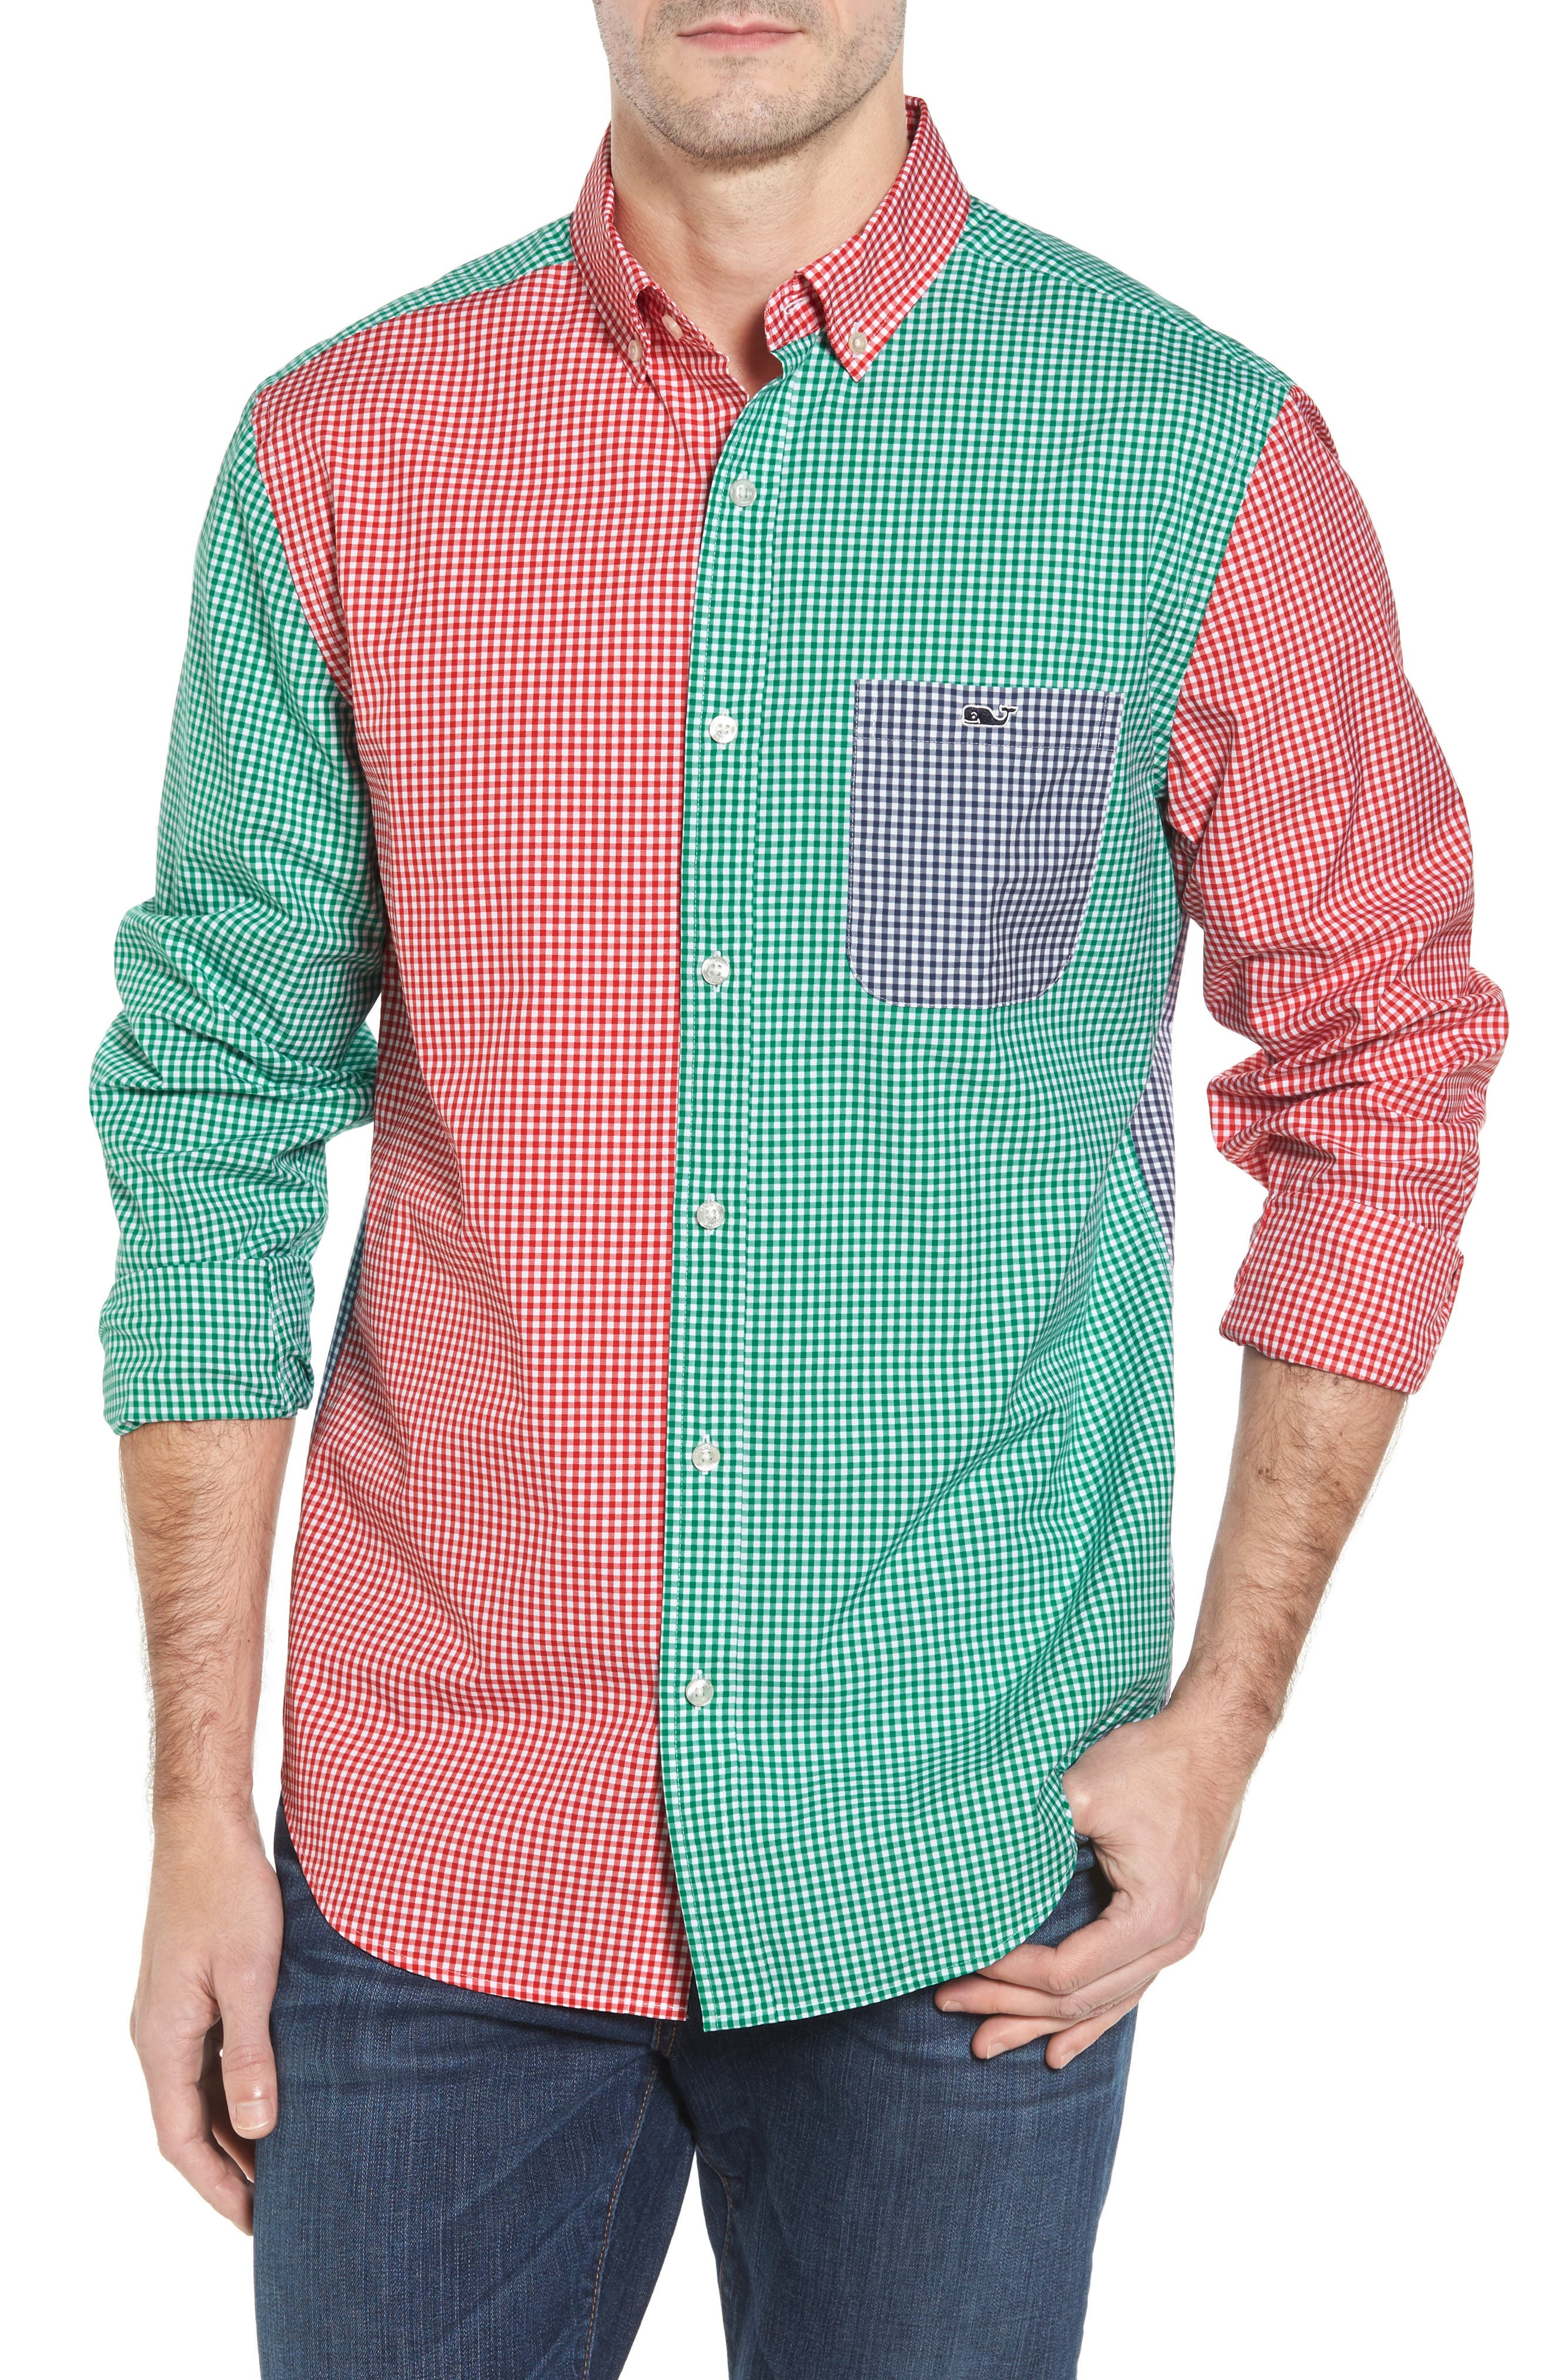 Main Image - vineyard vines Holiday Party Classic Fit Colorblock Sport Shirt